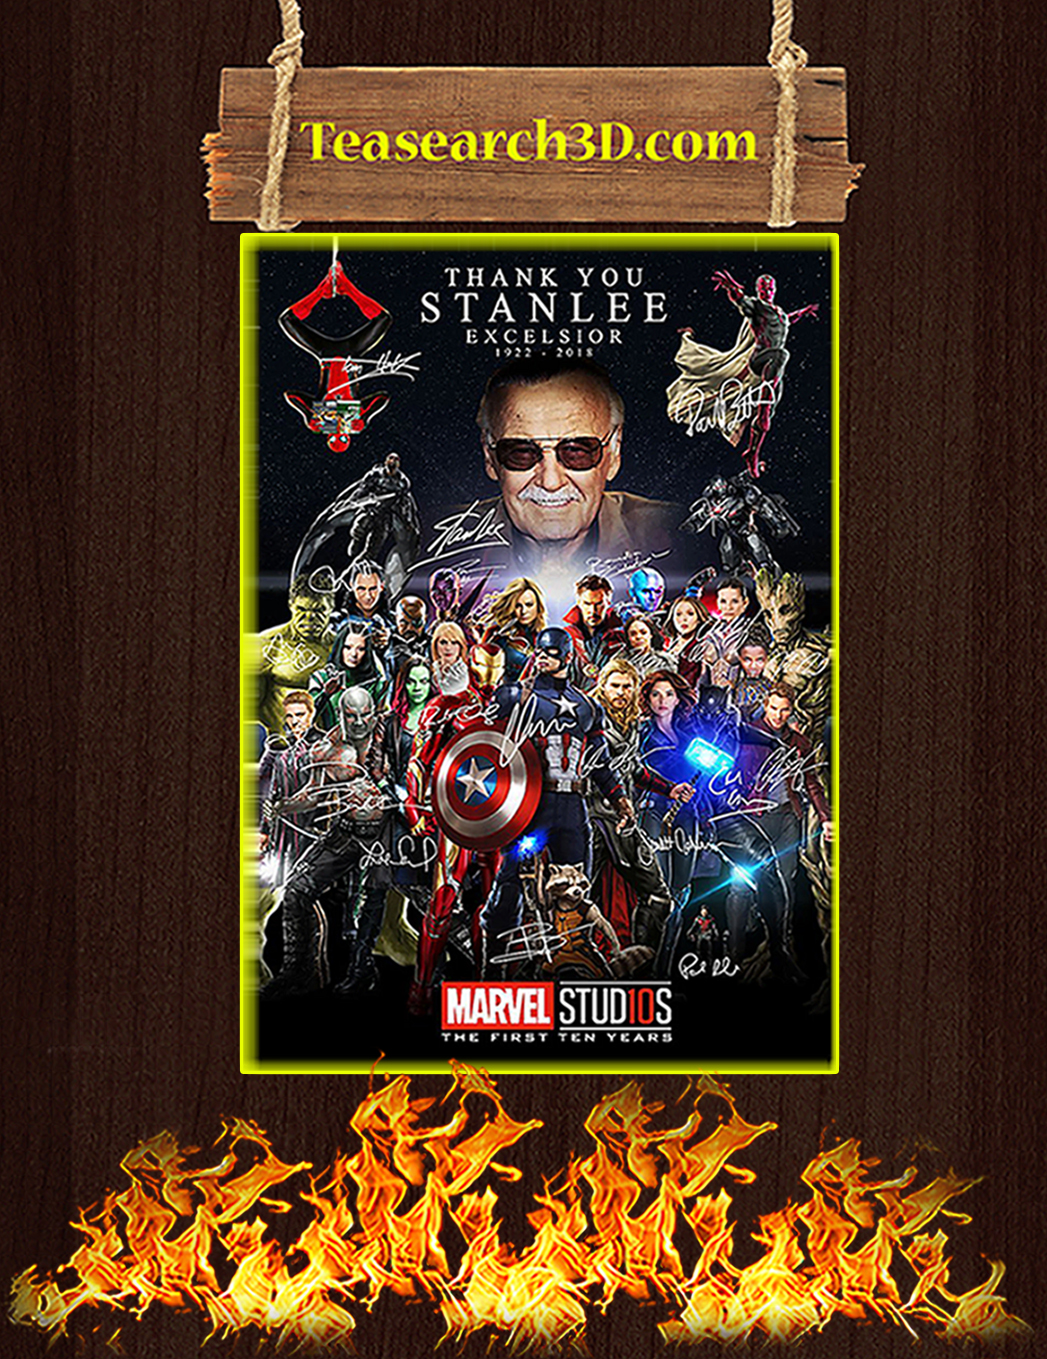 Thank you stanlee excelsior signature poster A1